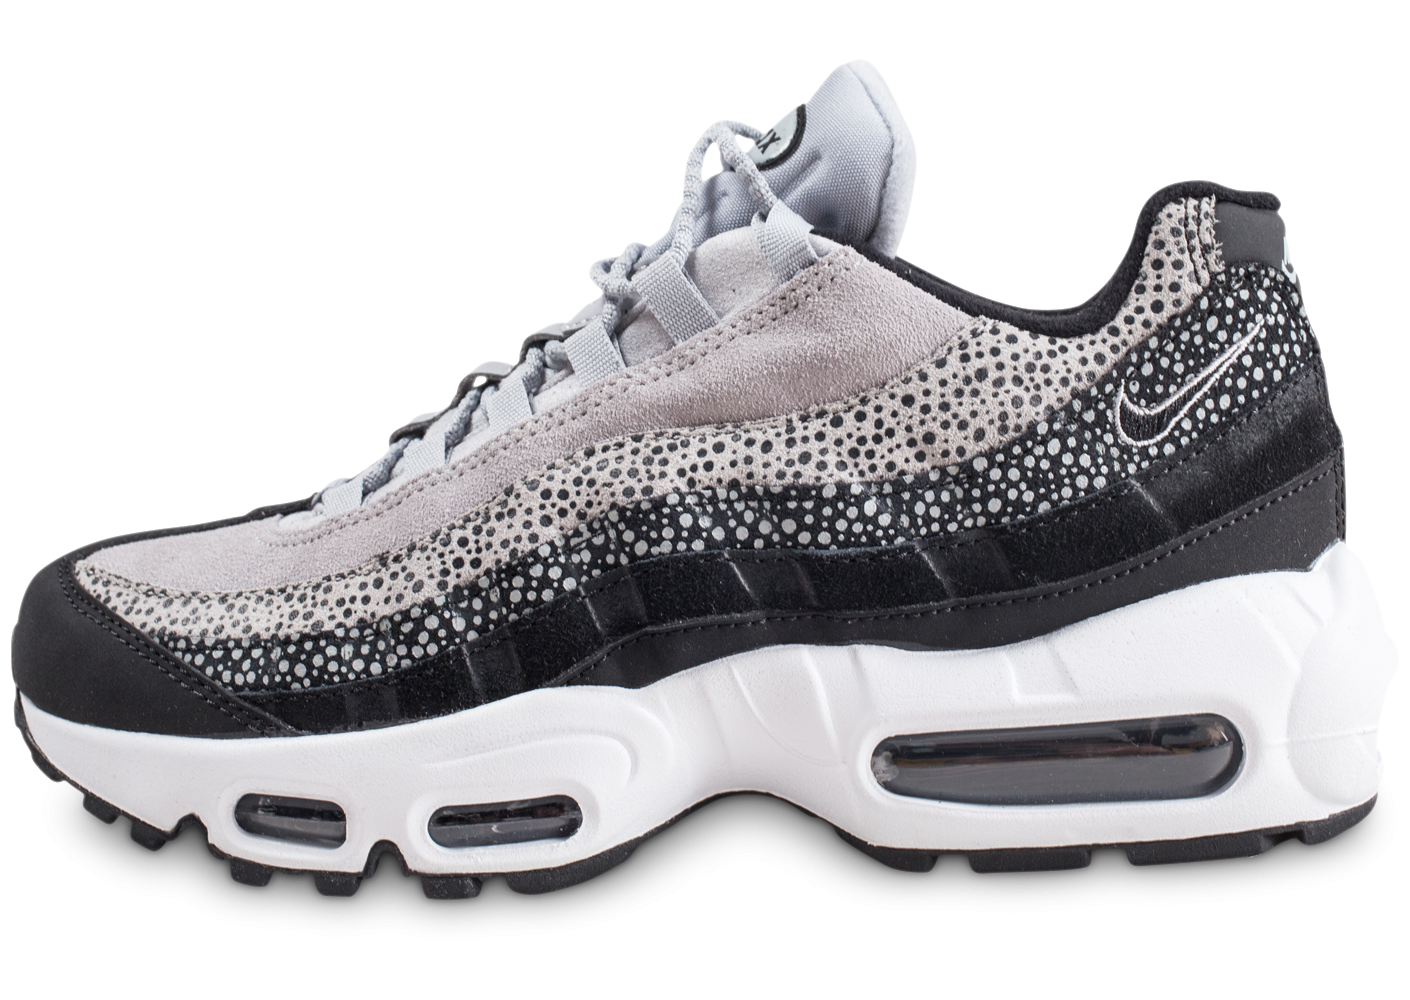 the best attitude f5a63 080e4 Nike Air Max 95 Premium Contrast grise femme - Chaussures Baskets femme -  Chausport